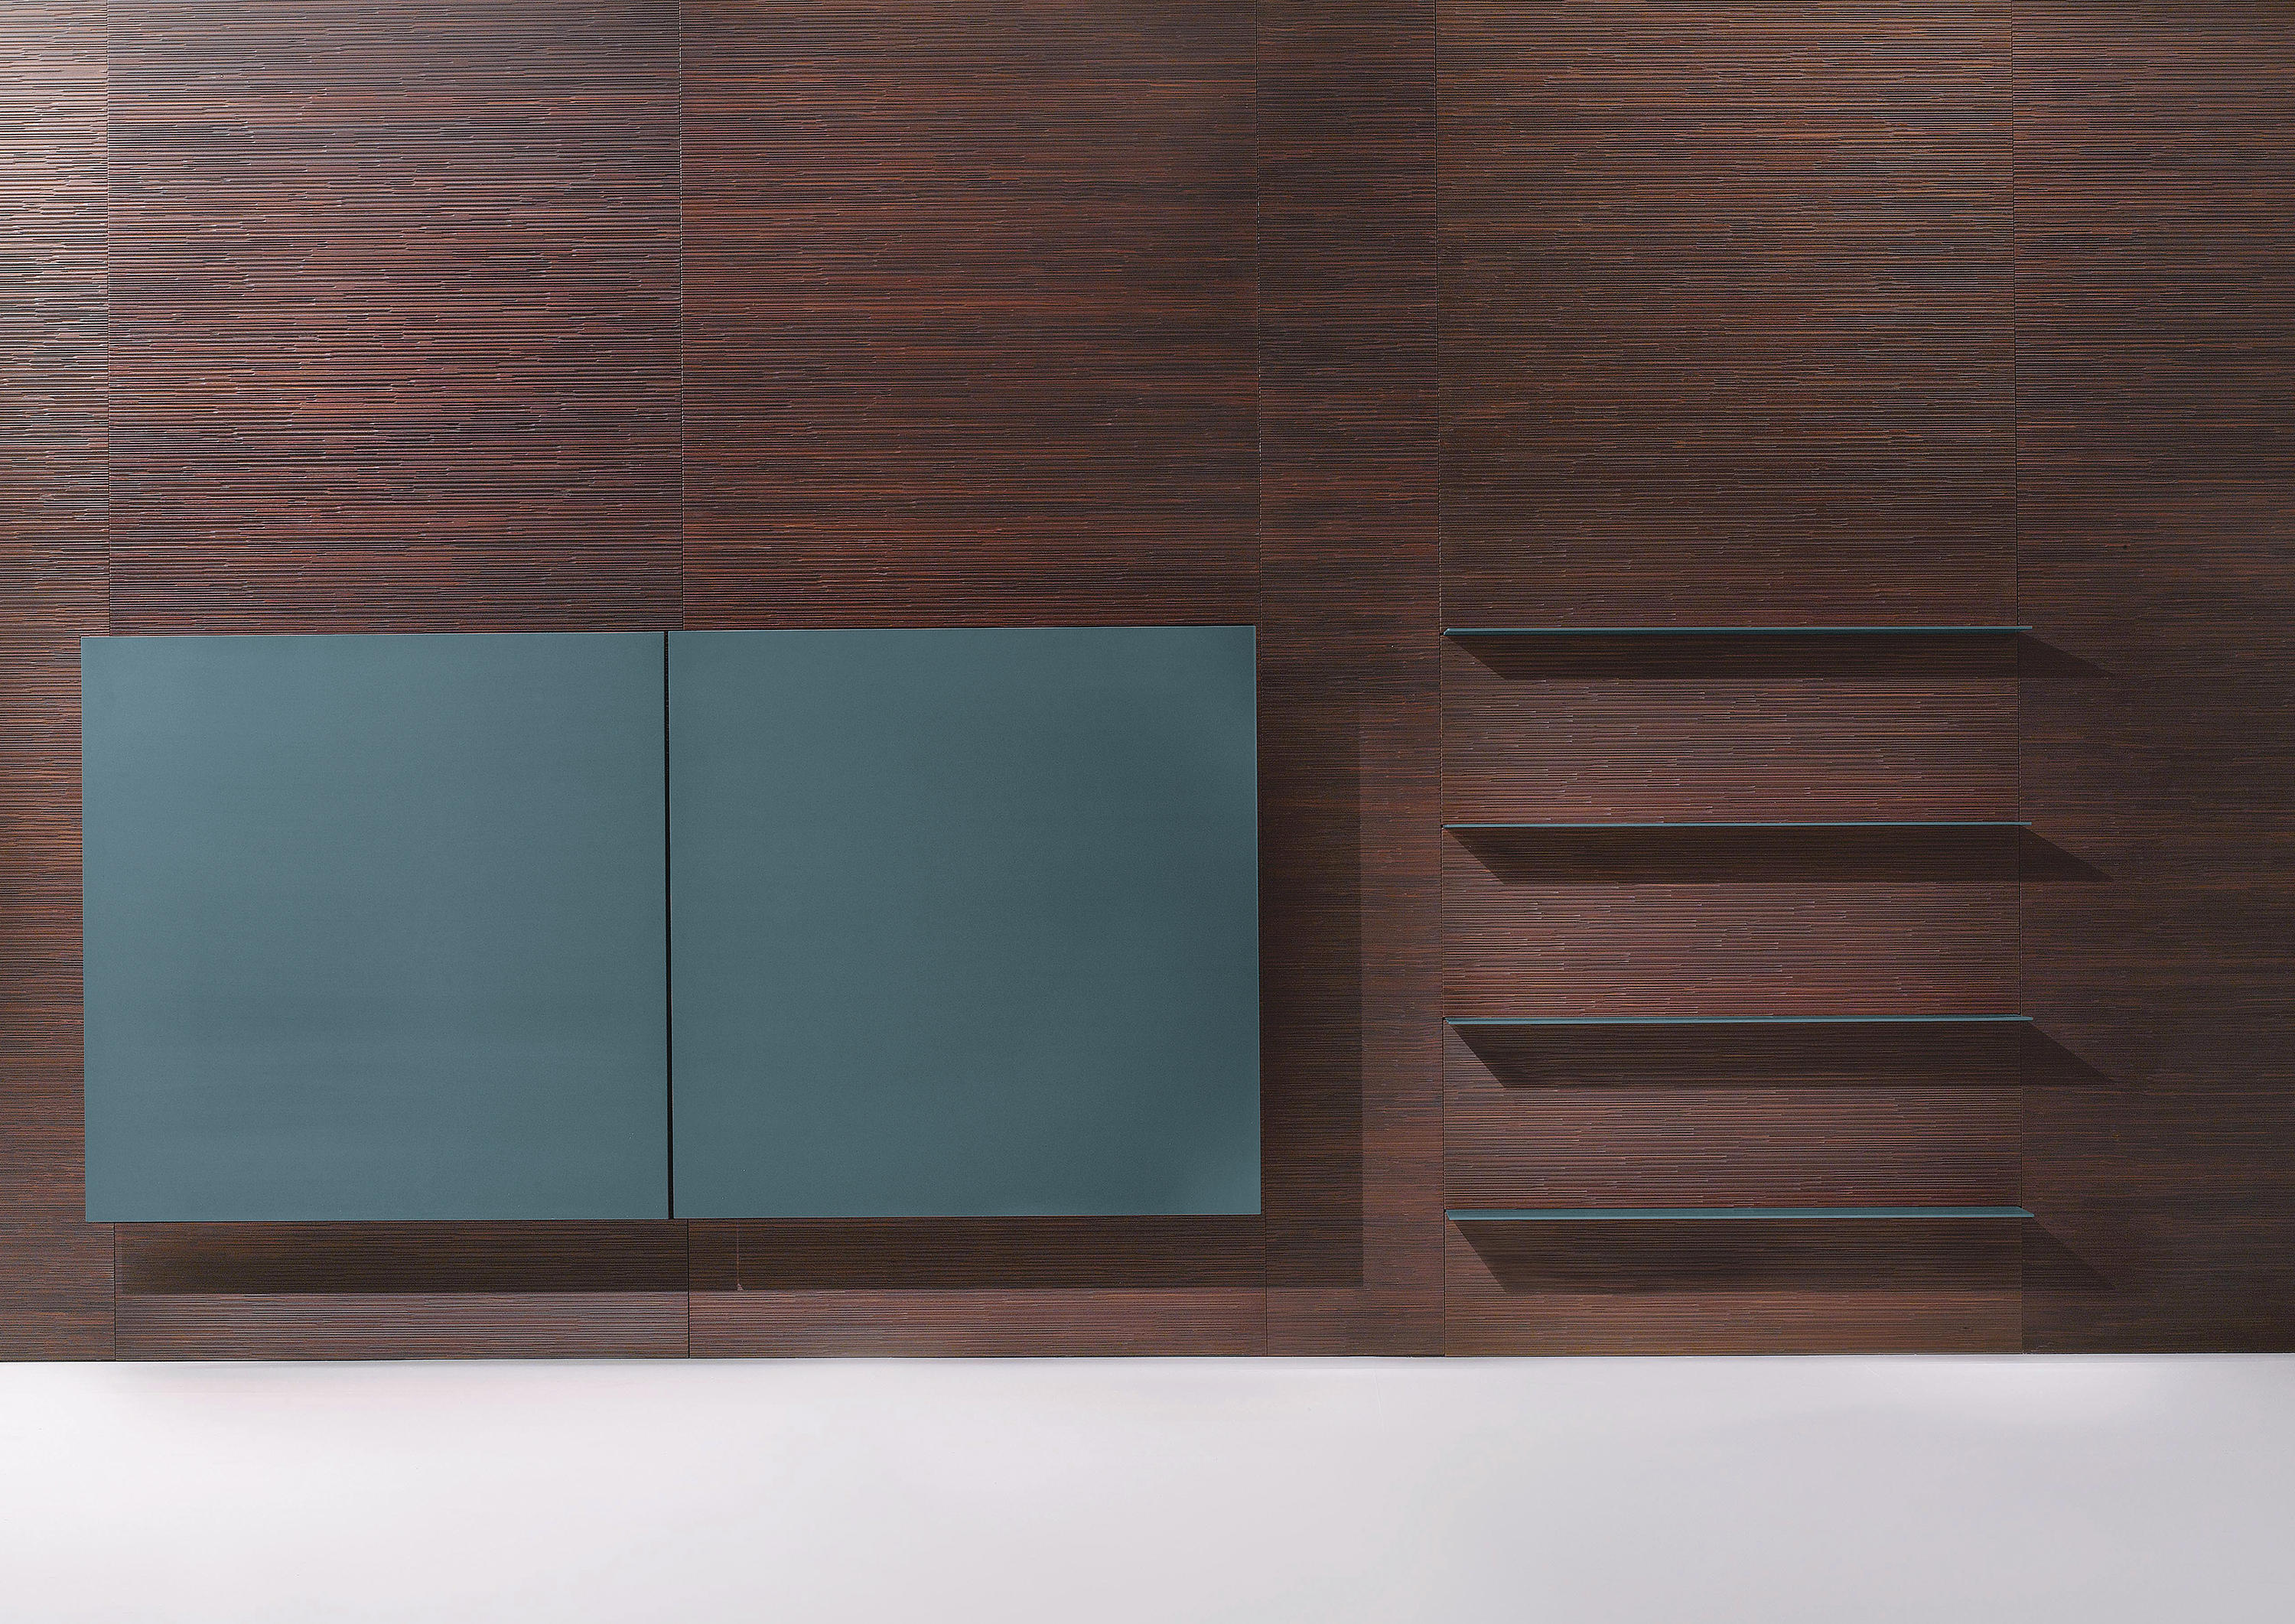 Wall Coverings Product : Decor wall covering panel with cupboard shelving from